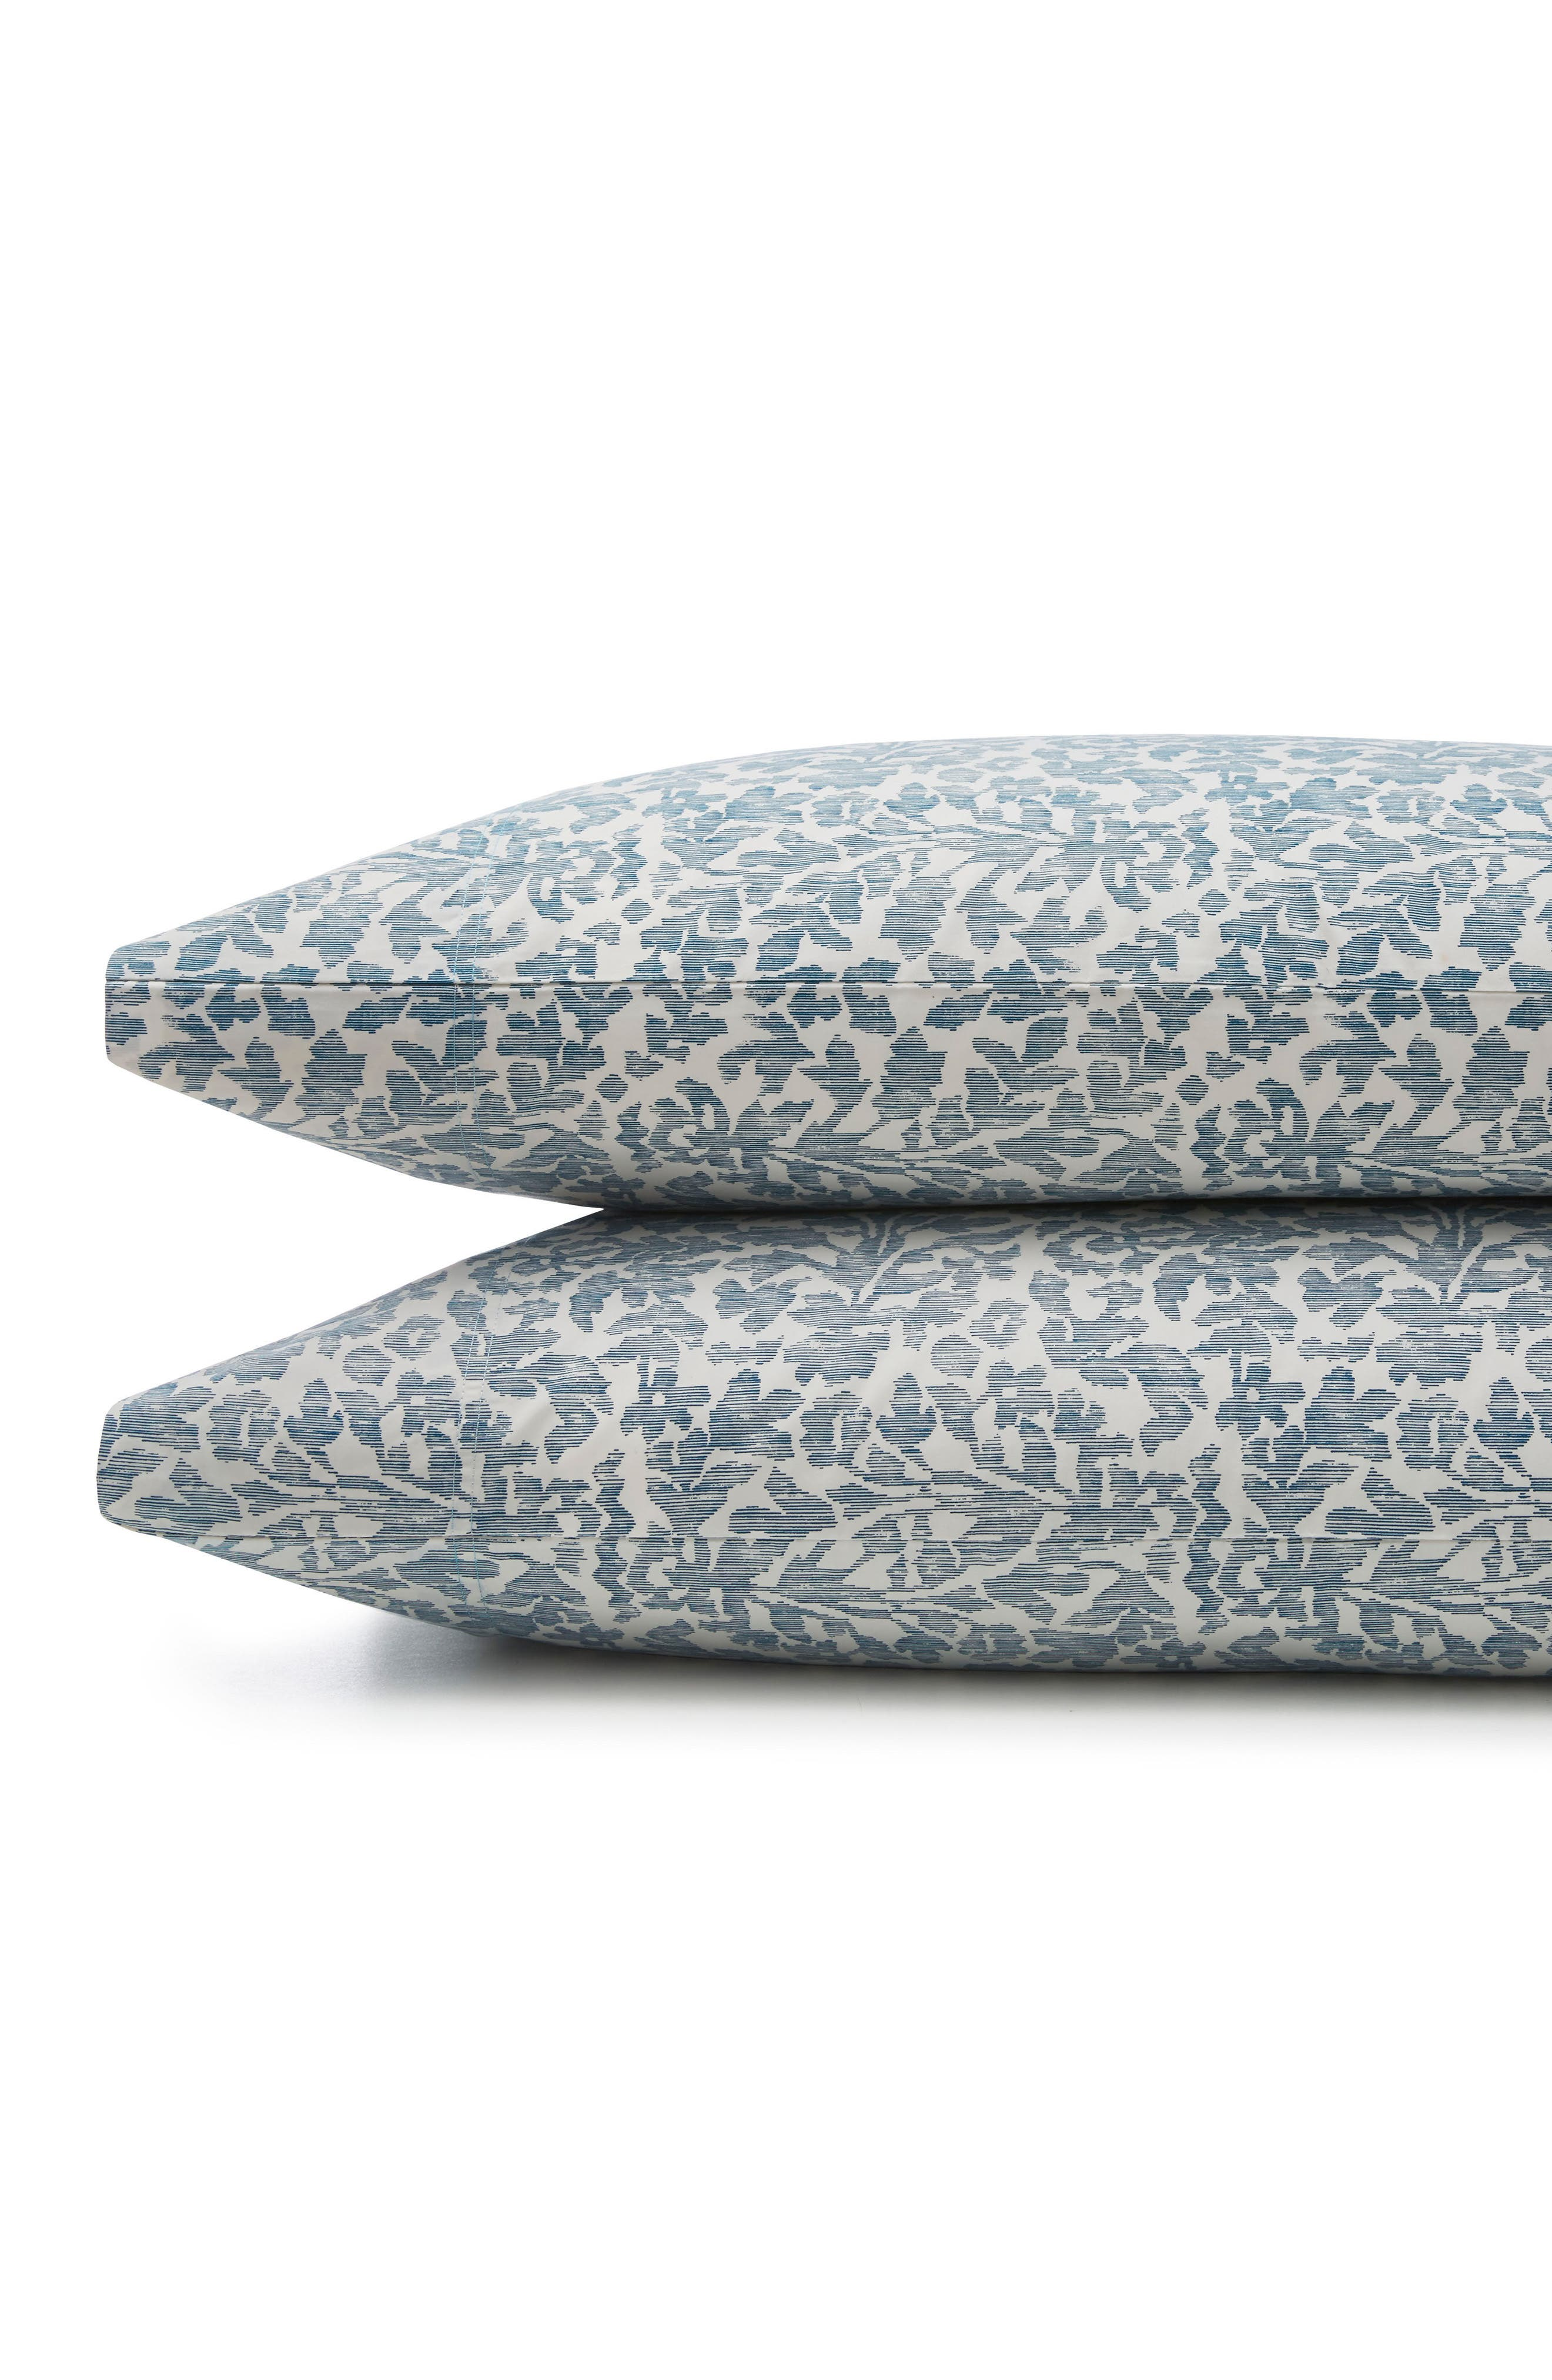 DwellStudio Oaxaca 300 Thread Count Pair of Pillowcases